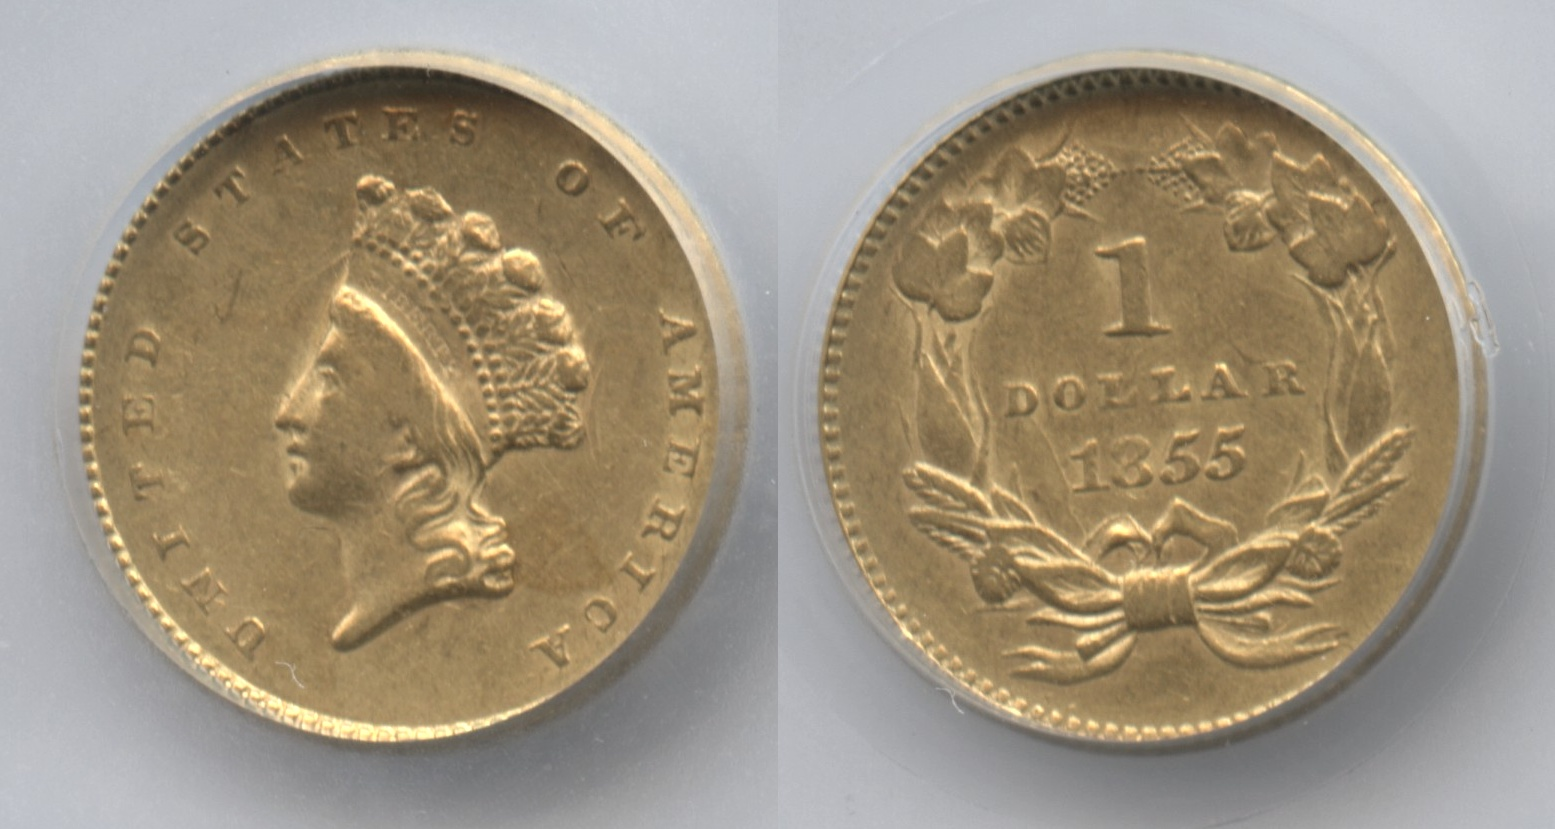 1855 Type 2 Gold Dollar SEGS AU-58